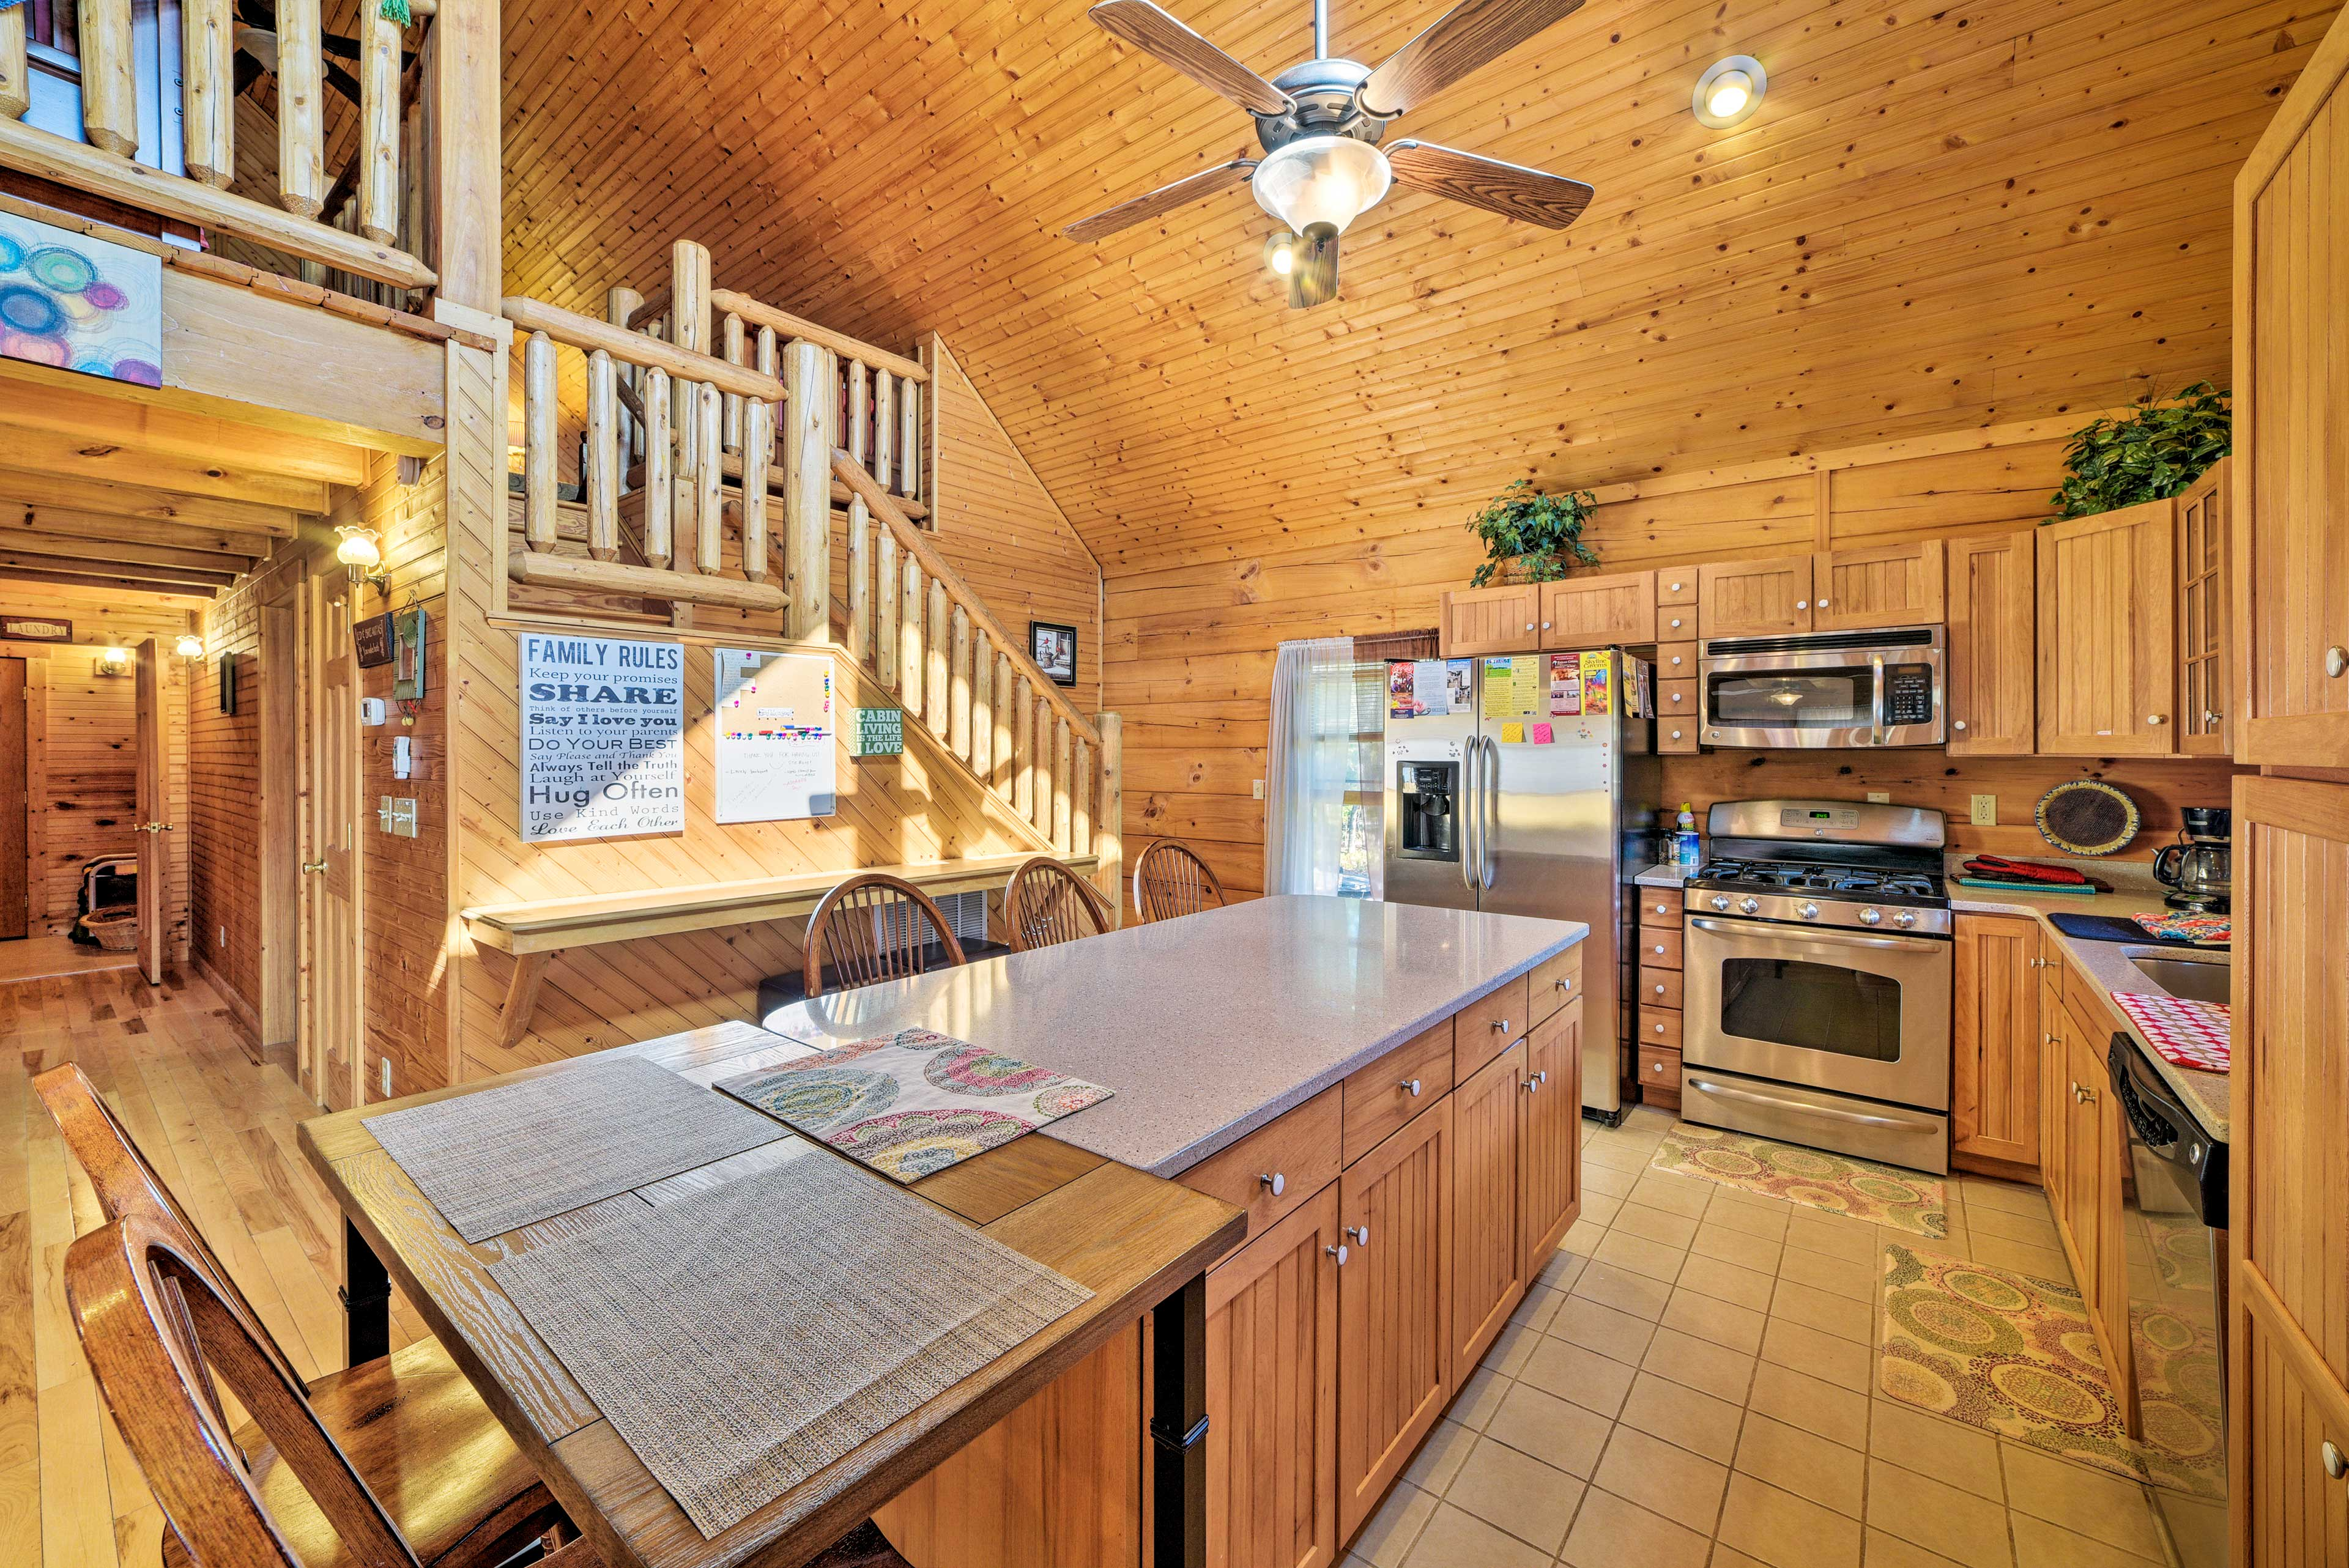 Enjoy a meal at the kitchen island or kitchen table for 2.